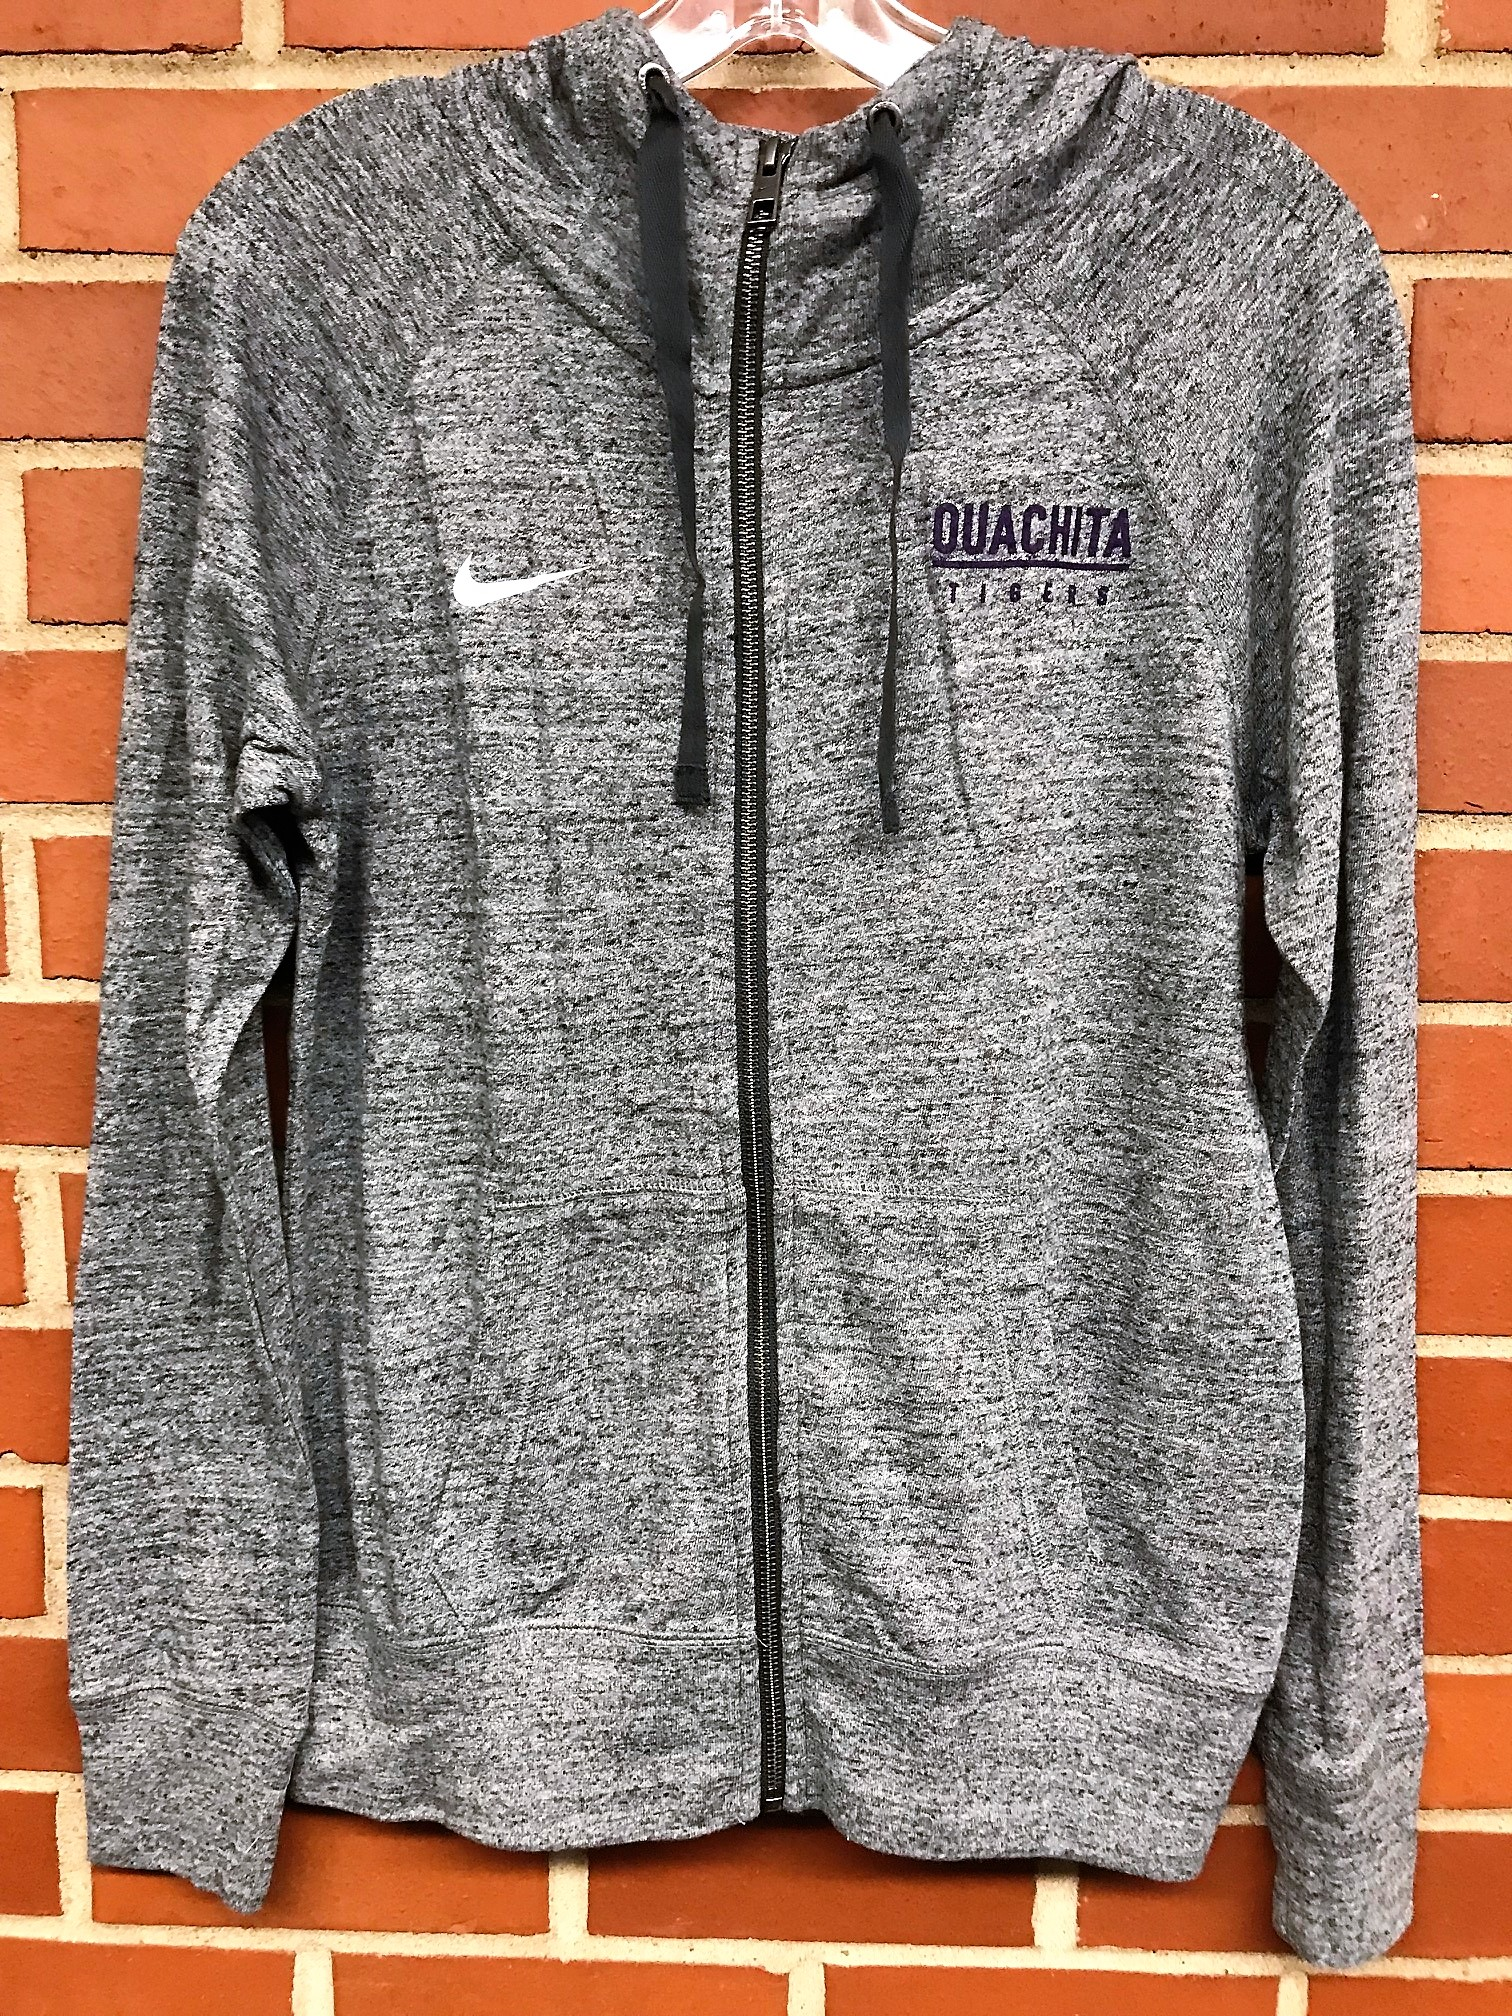 OUACHITA TIGERS VINTAGE FULL ZIP JACKET